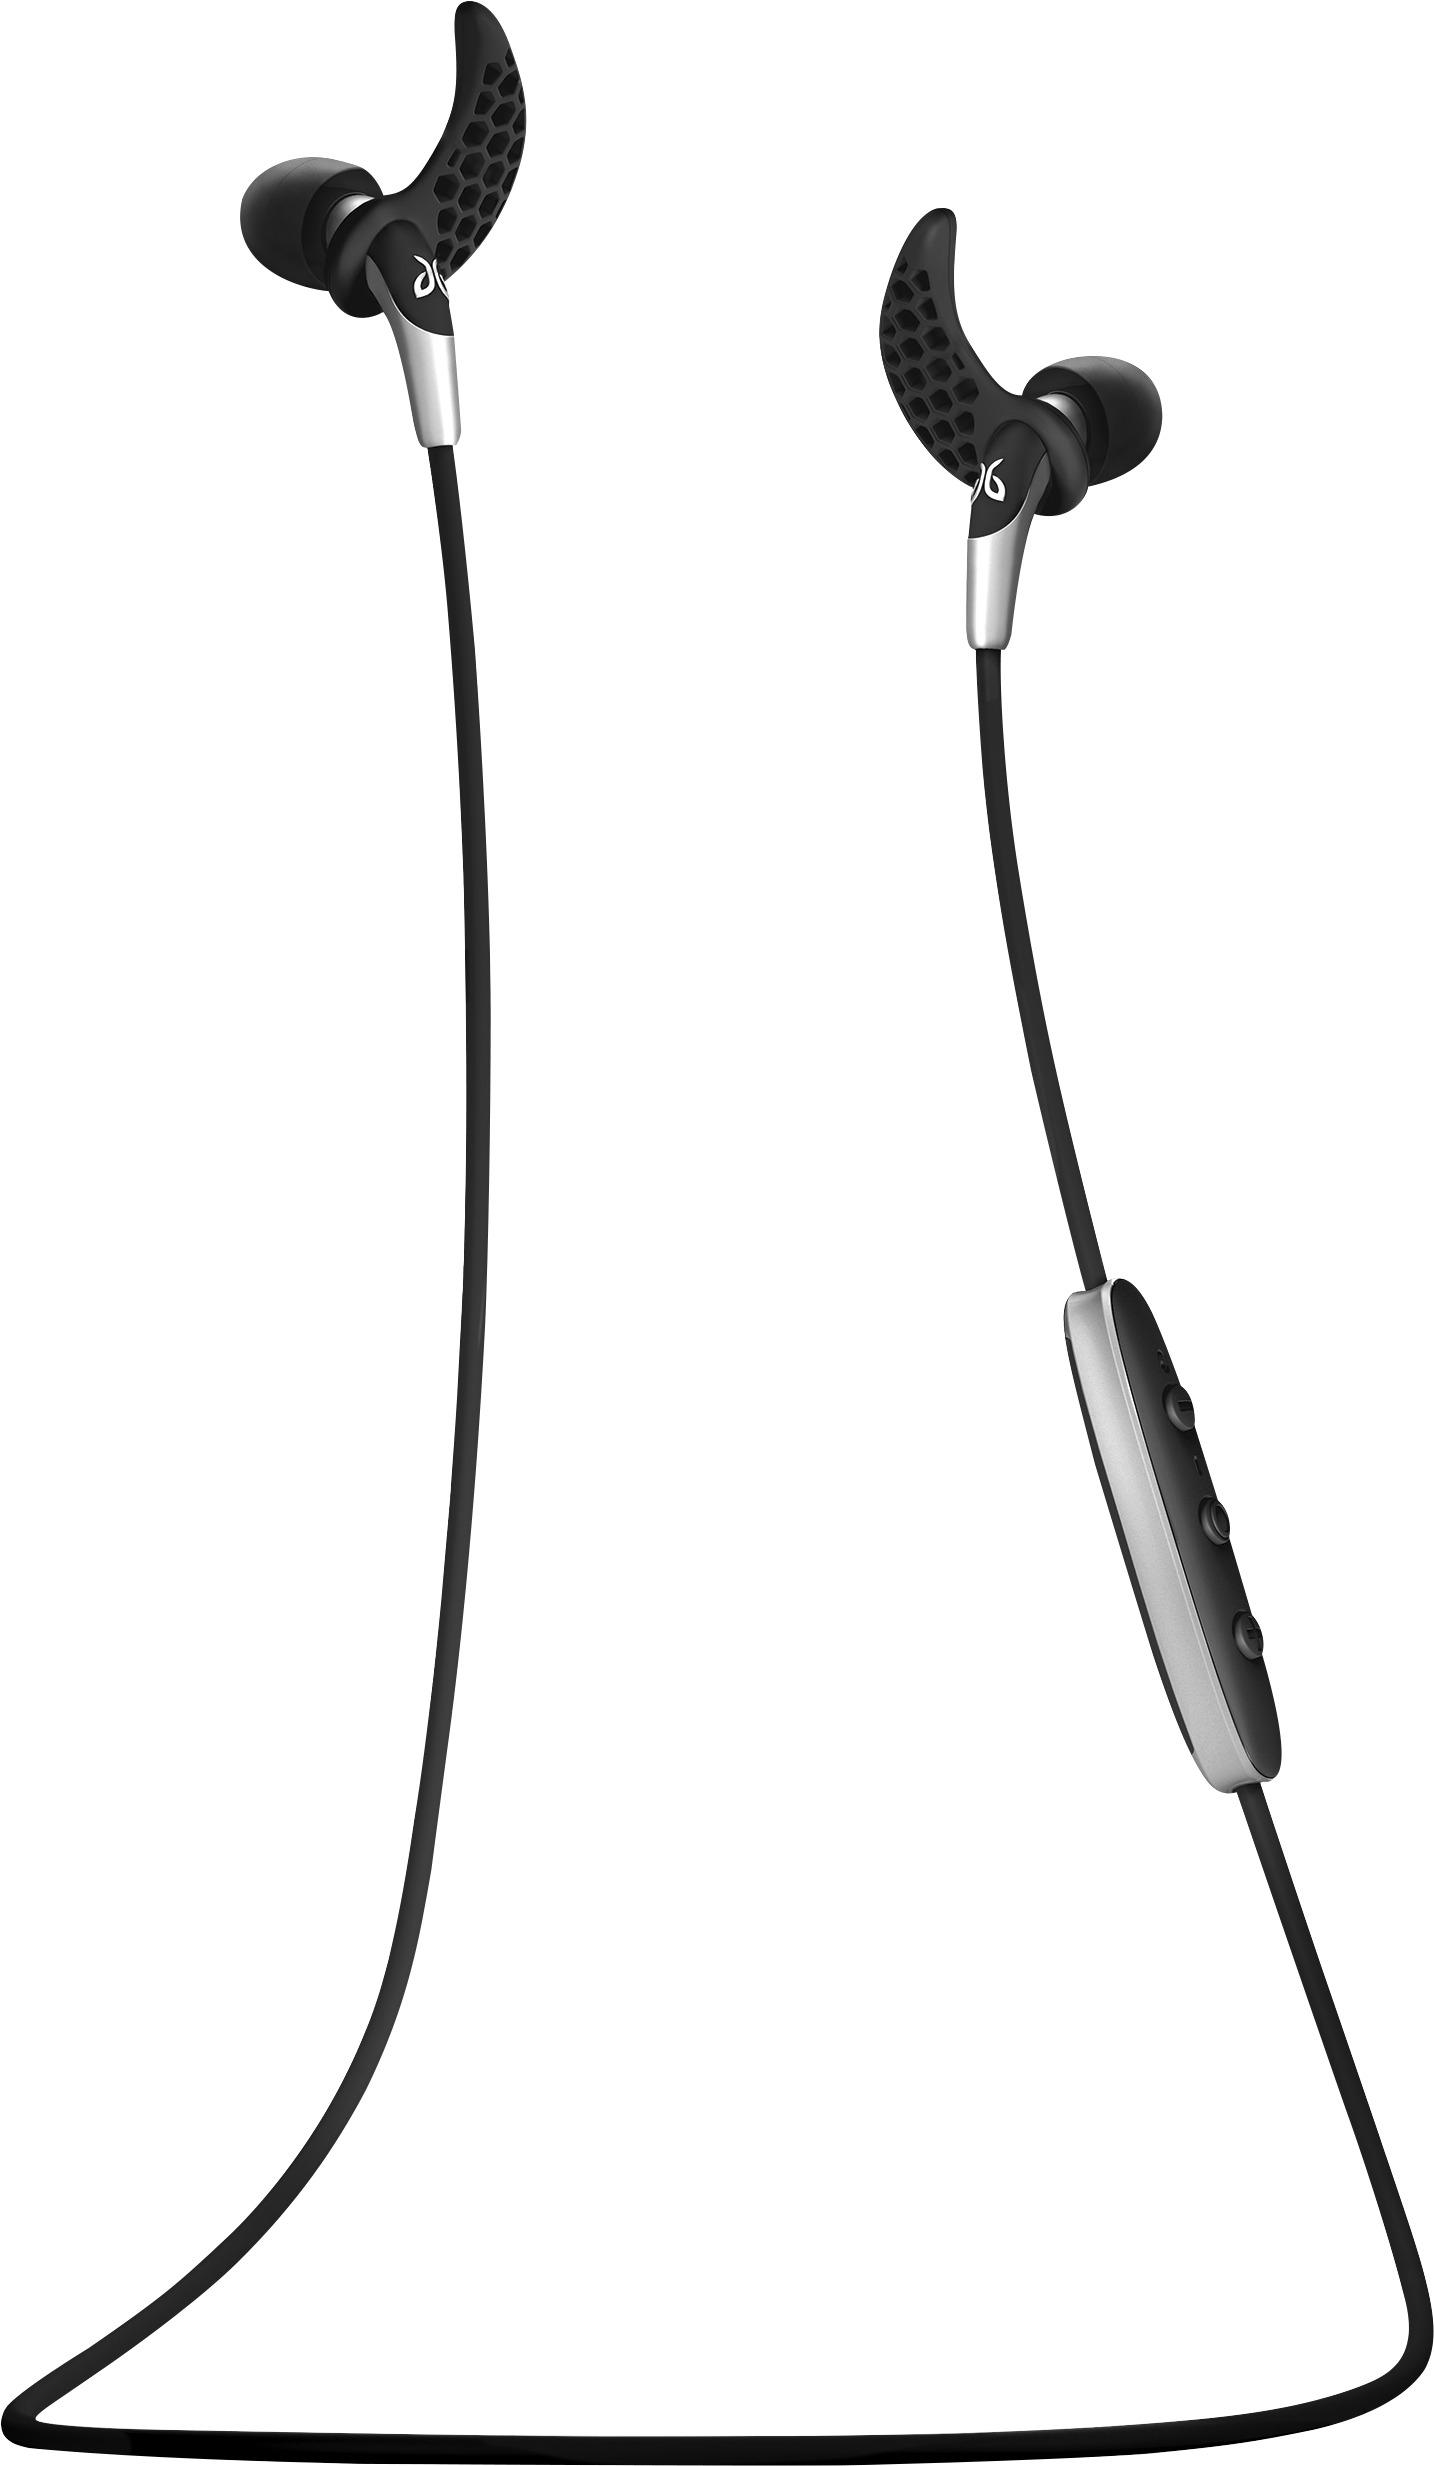 Jaybird Freedom F5 Wireless In-Ear Headphones Black 985